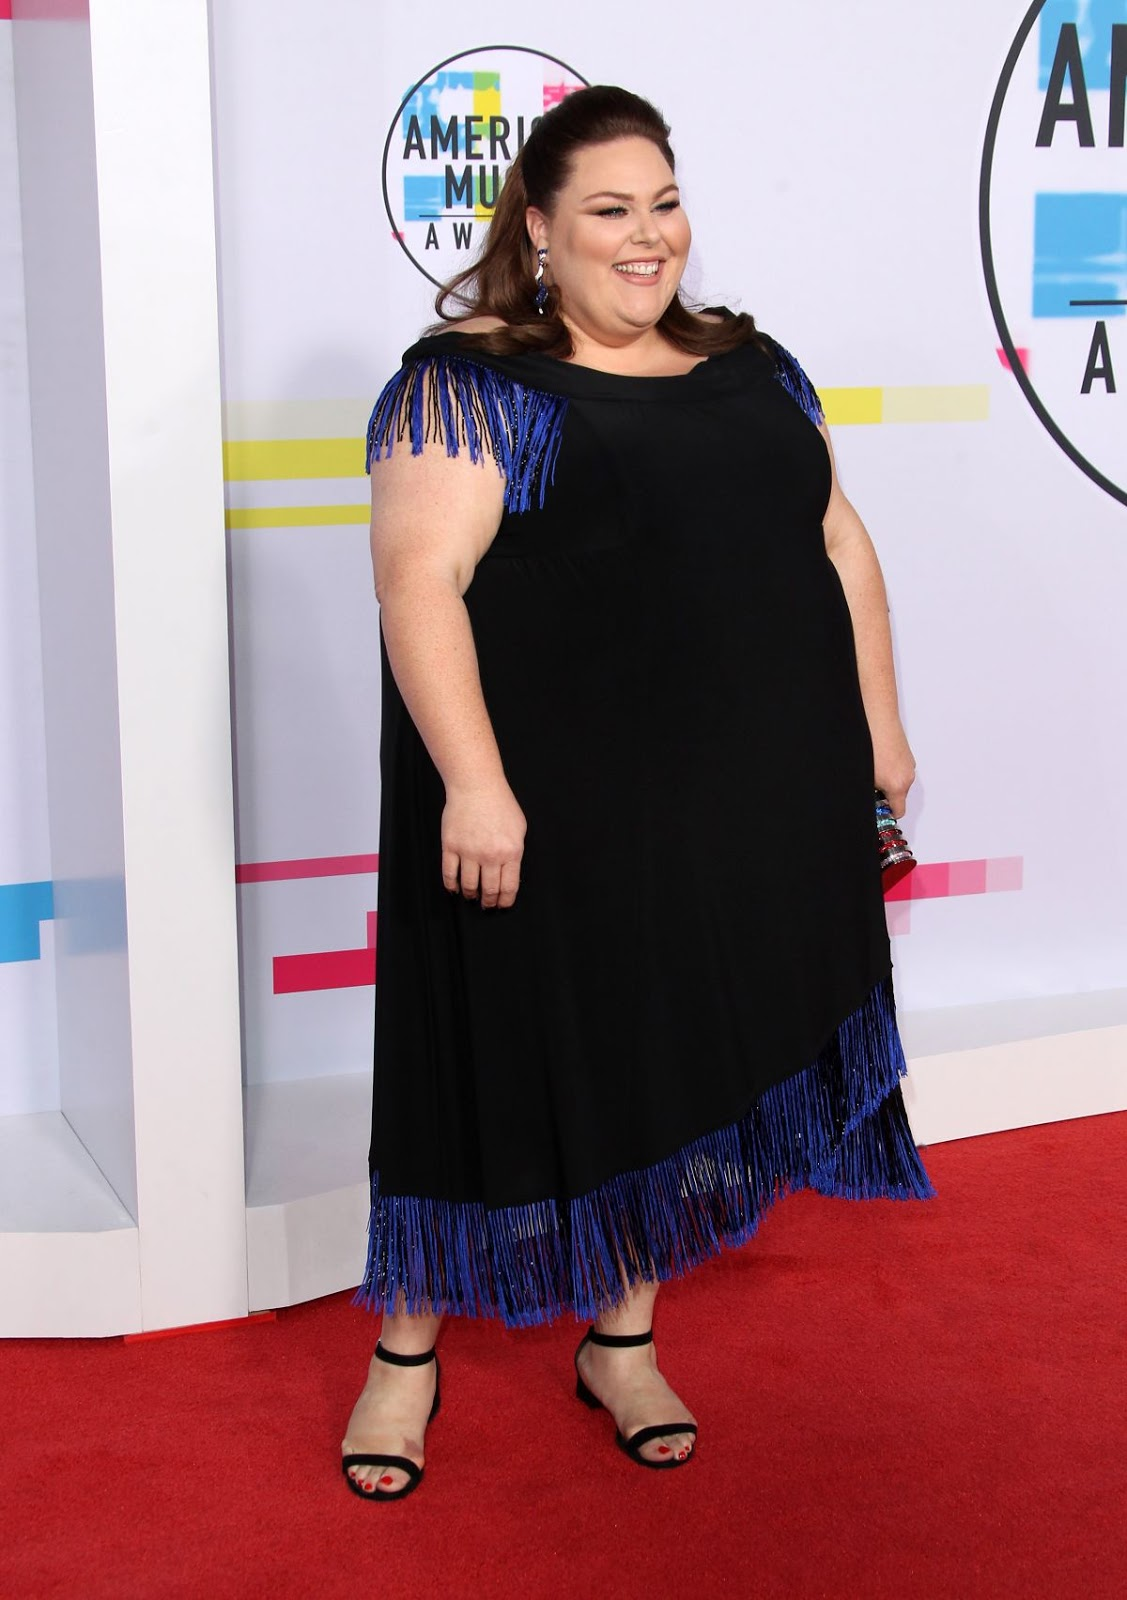 Photos of Chrissy Metz at American Music Awards 2017 at Microsoft Theater in Los Angeles